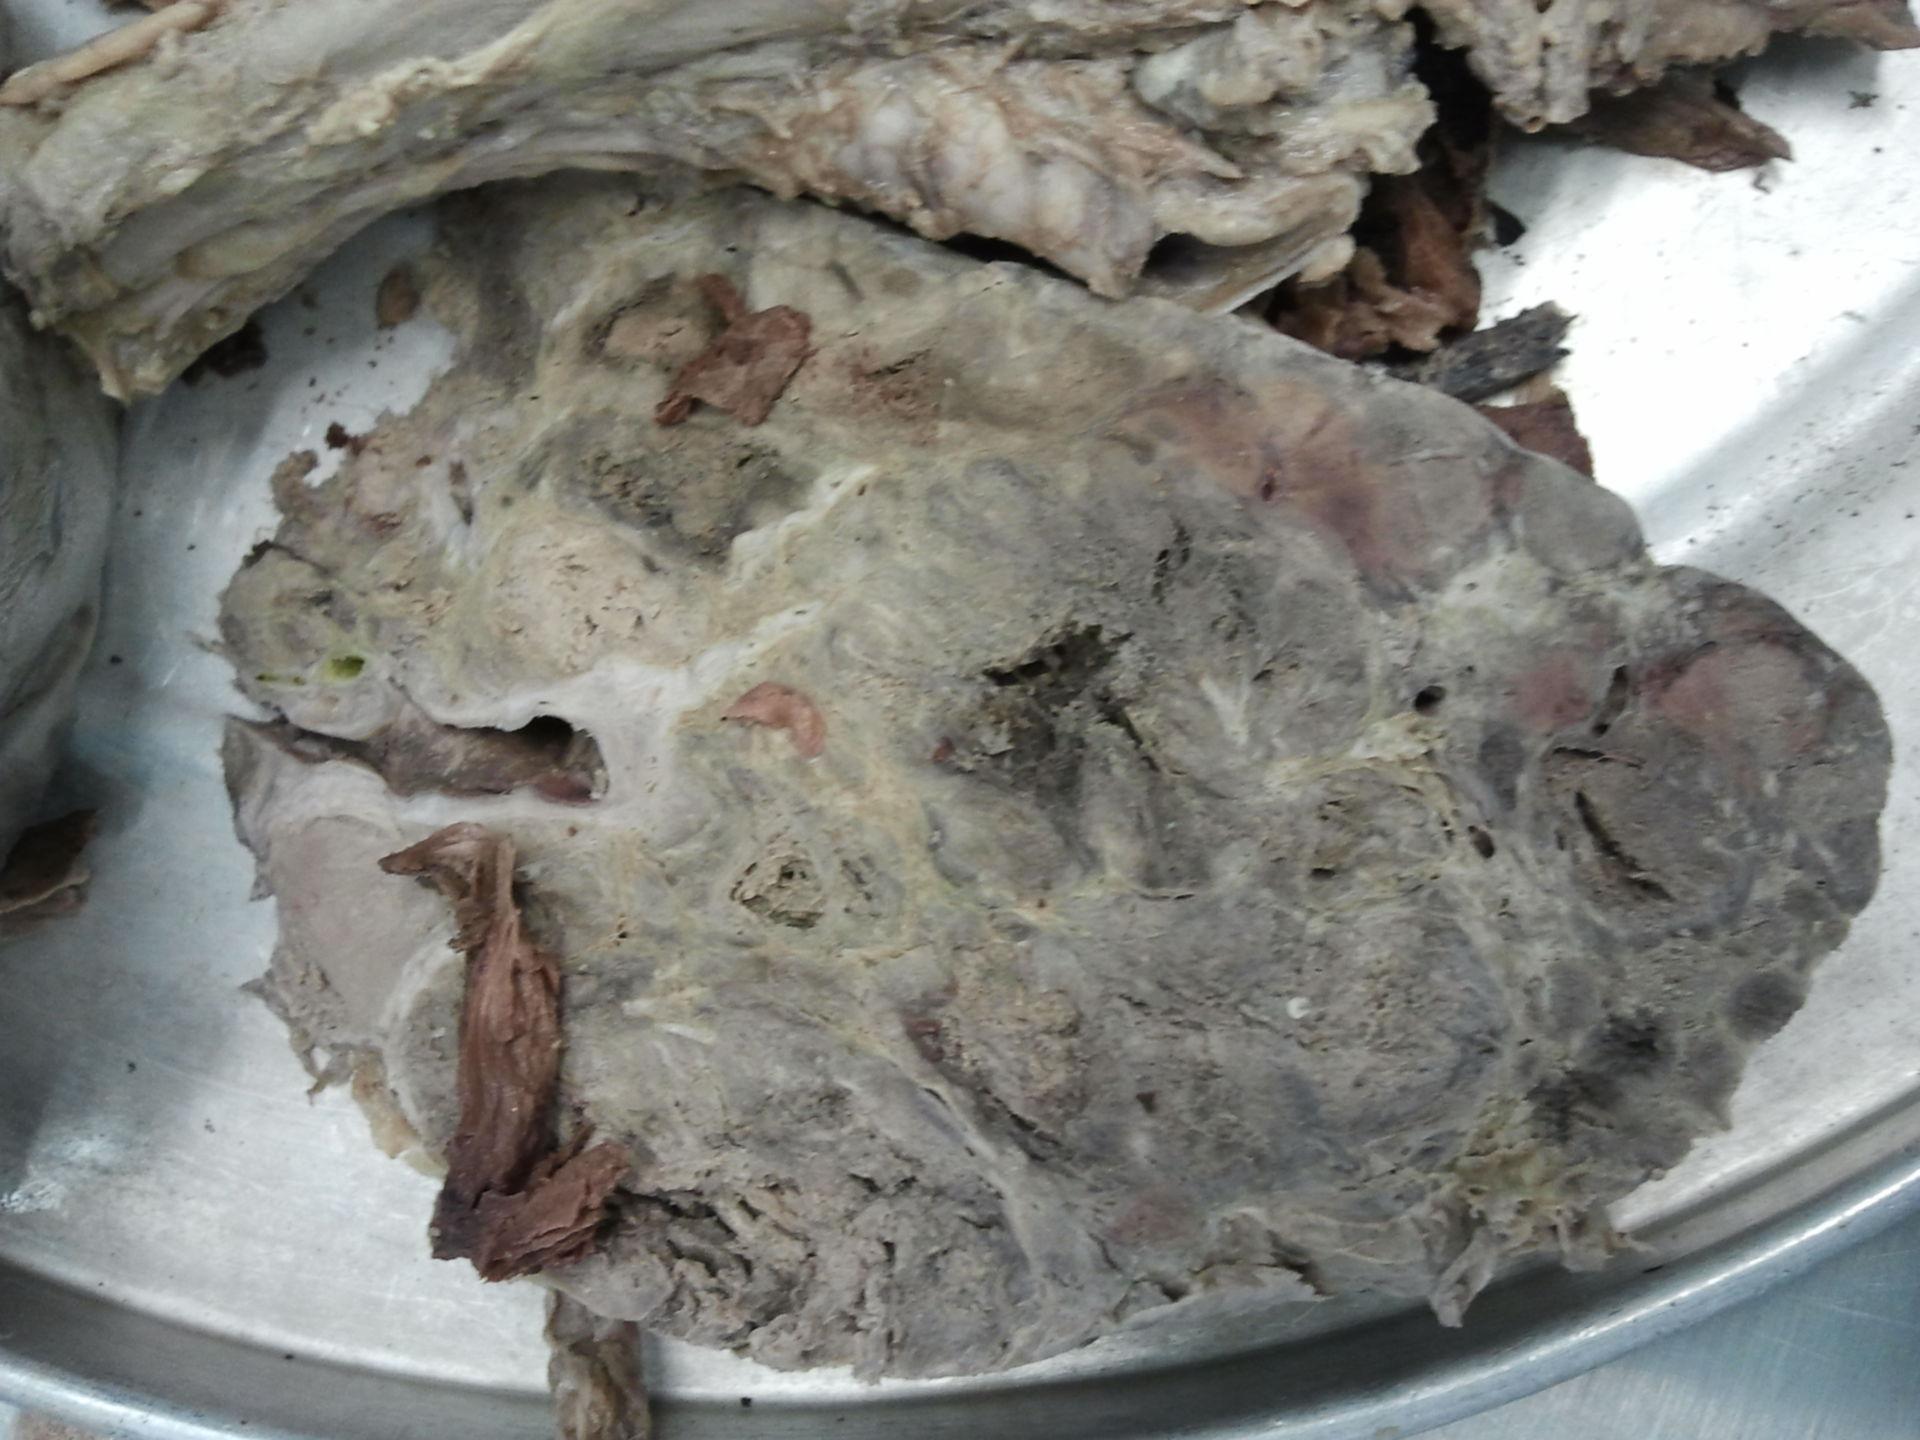 Liver with metastases